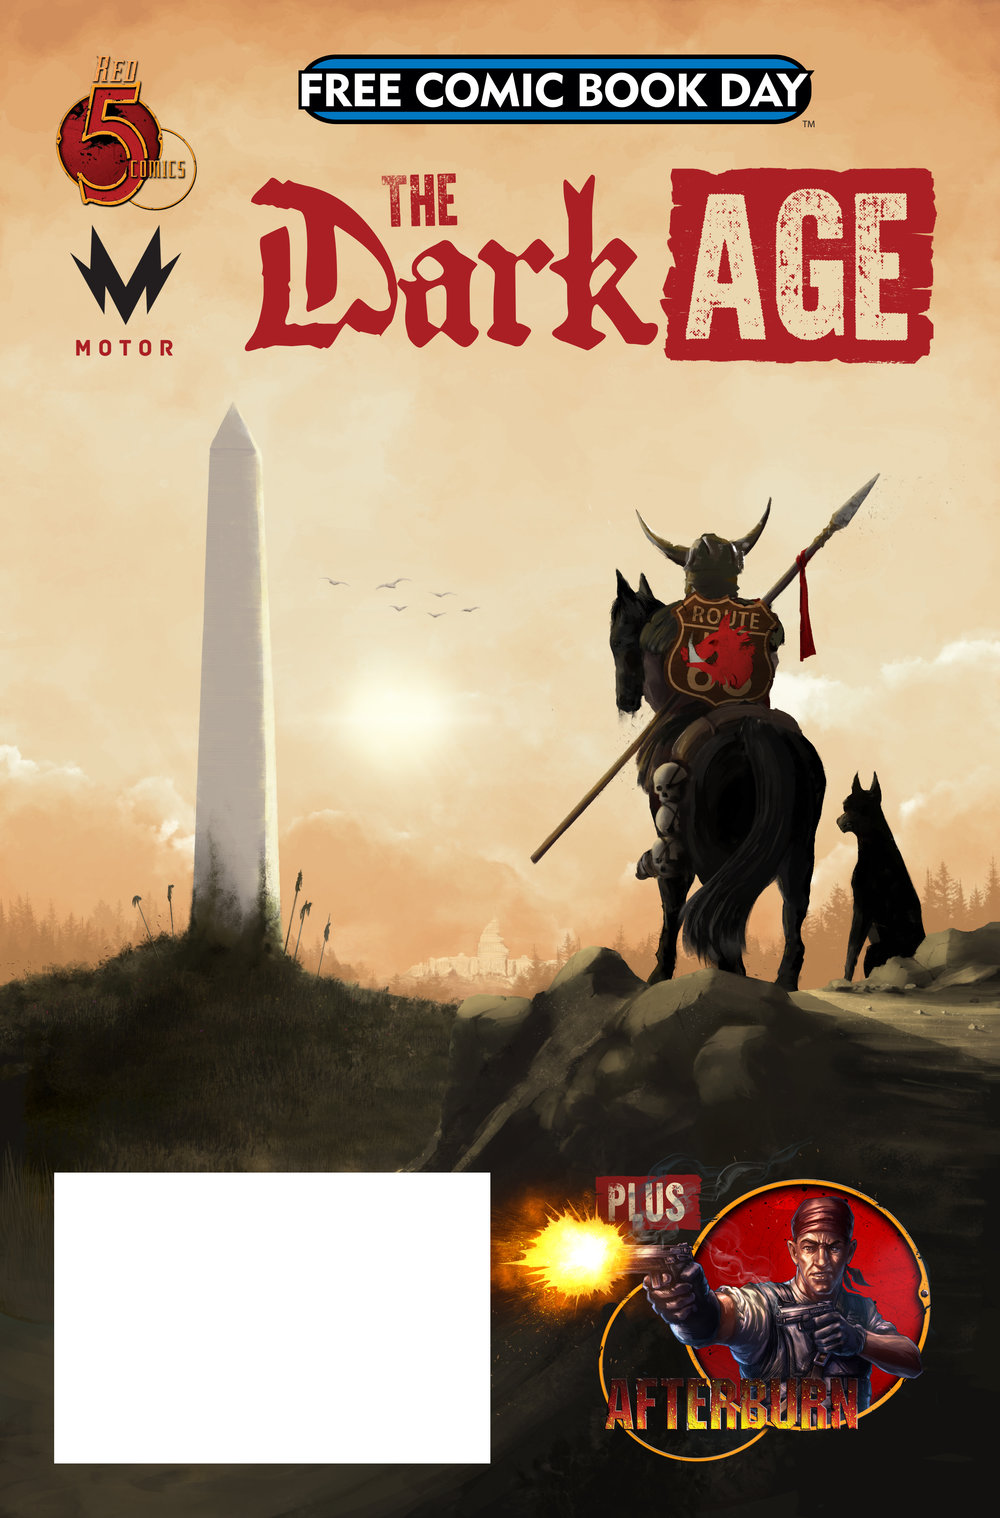 Free Comic Book Day 2019 - May 4, 2019 - The Dark Age / Afterburn